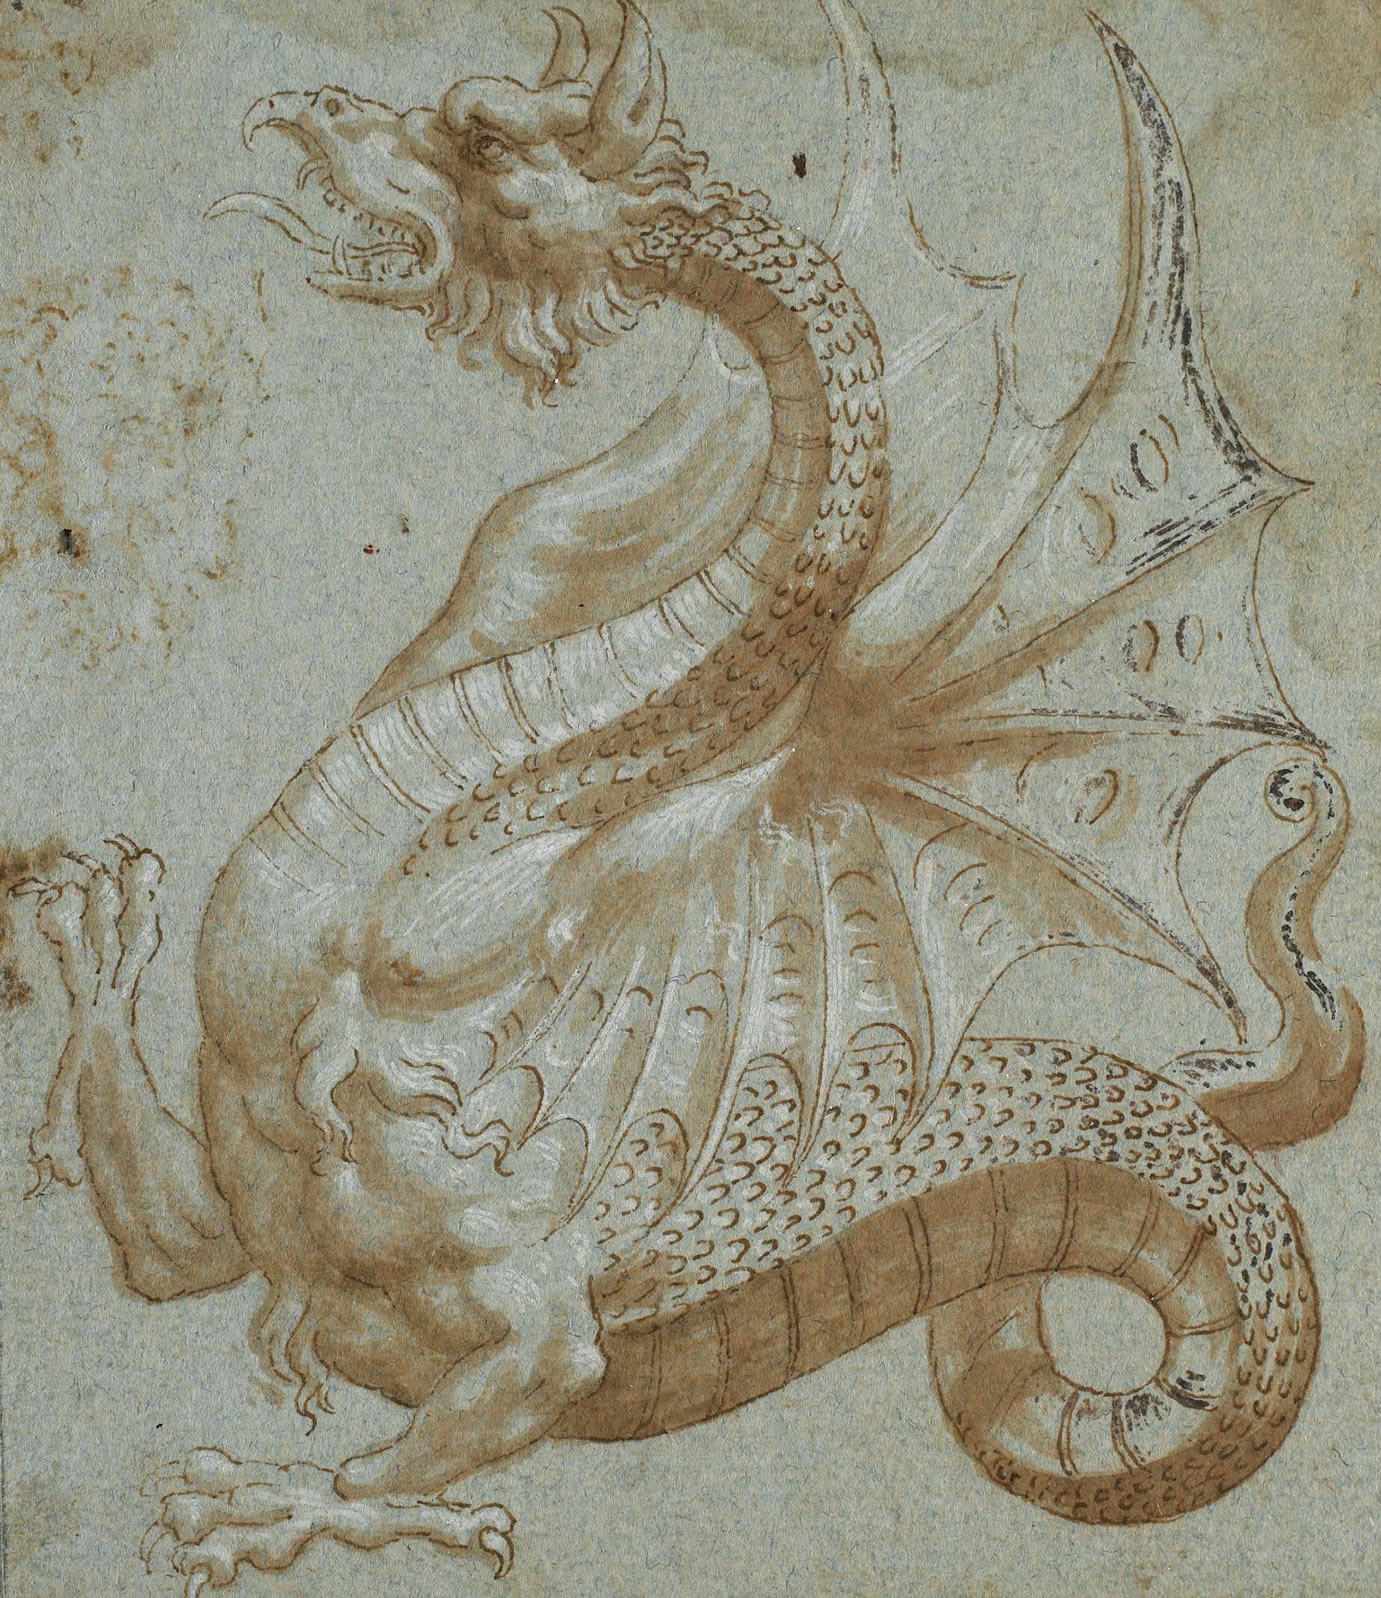 Albrecht-Dürer-The-Beast-with-Lamb's-Horns-c.-1496–97.-Circle-of-Guilio-Romano-Study-of-a-Dragon-after-1530 (1).jpg